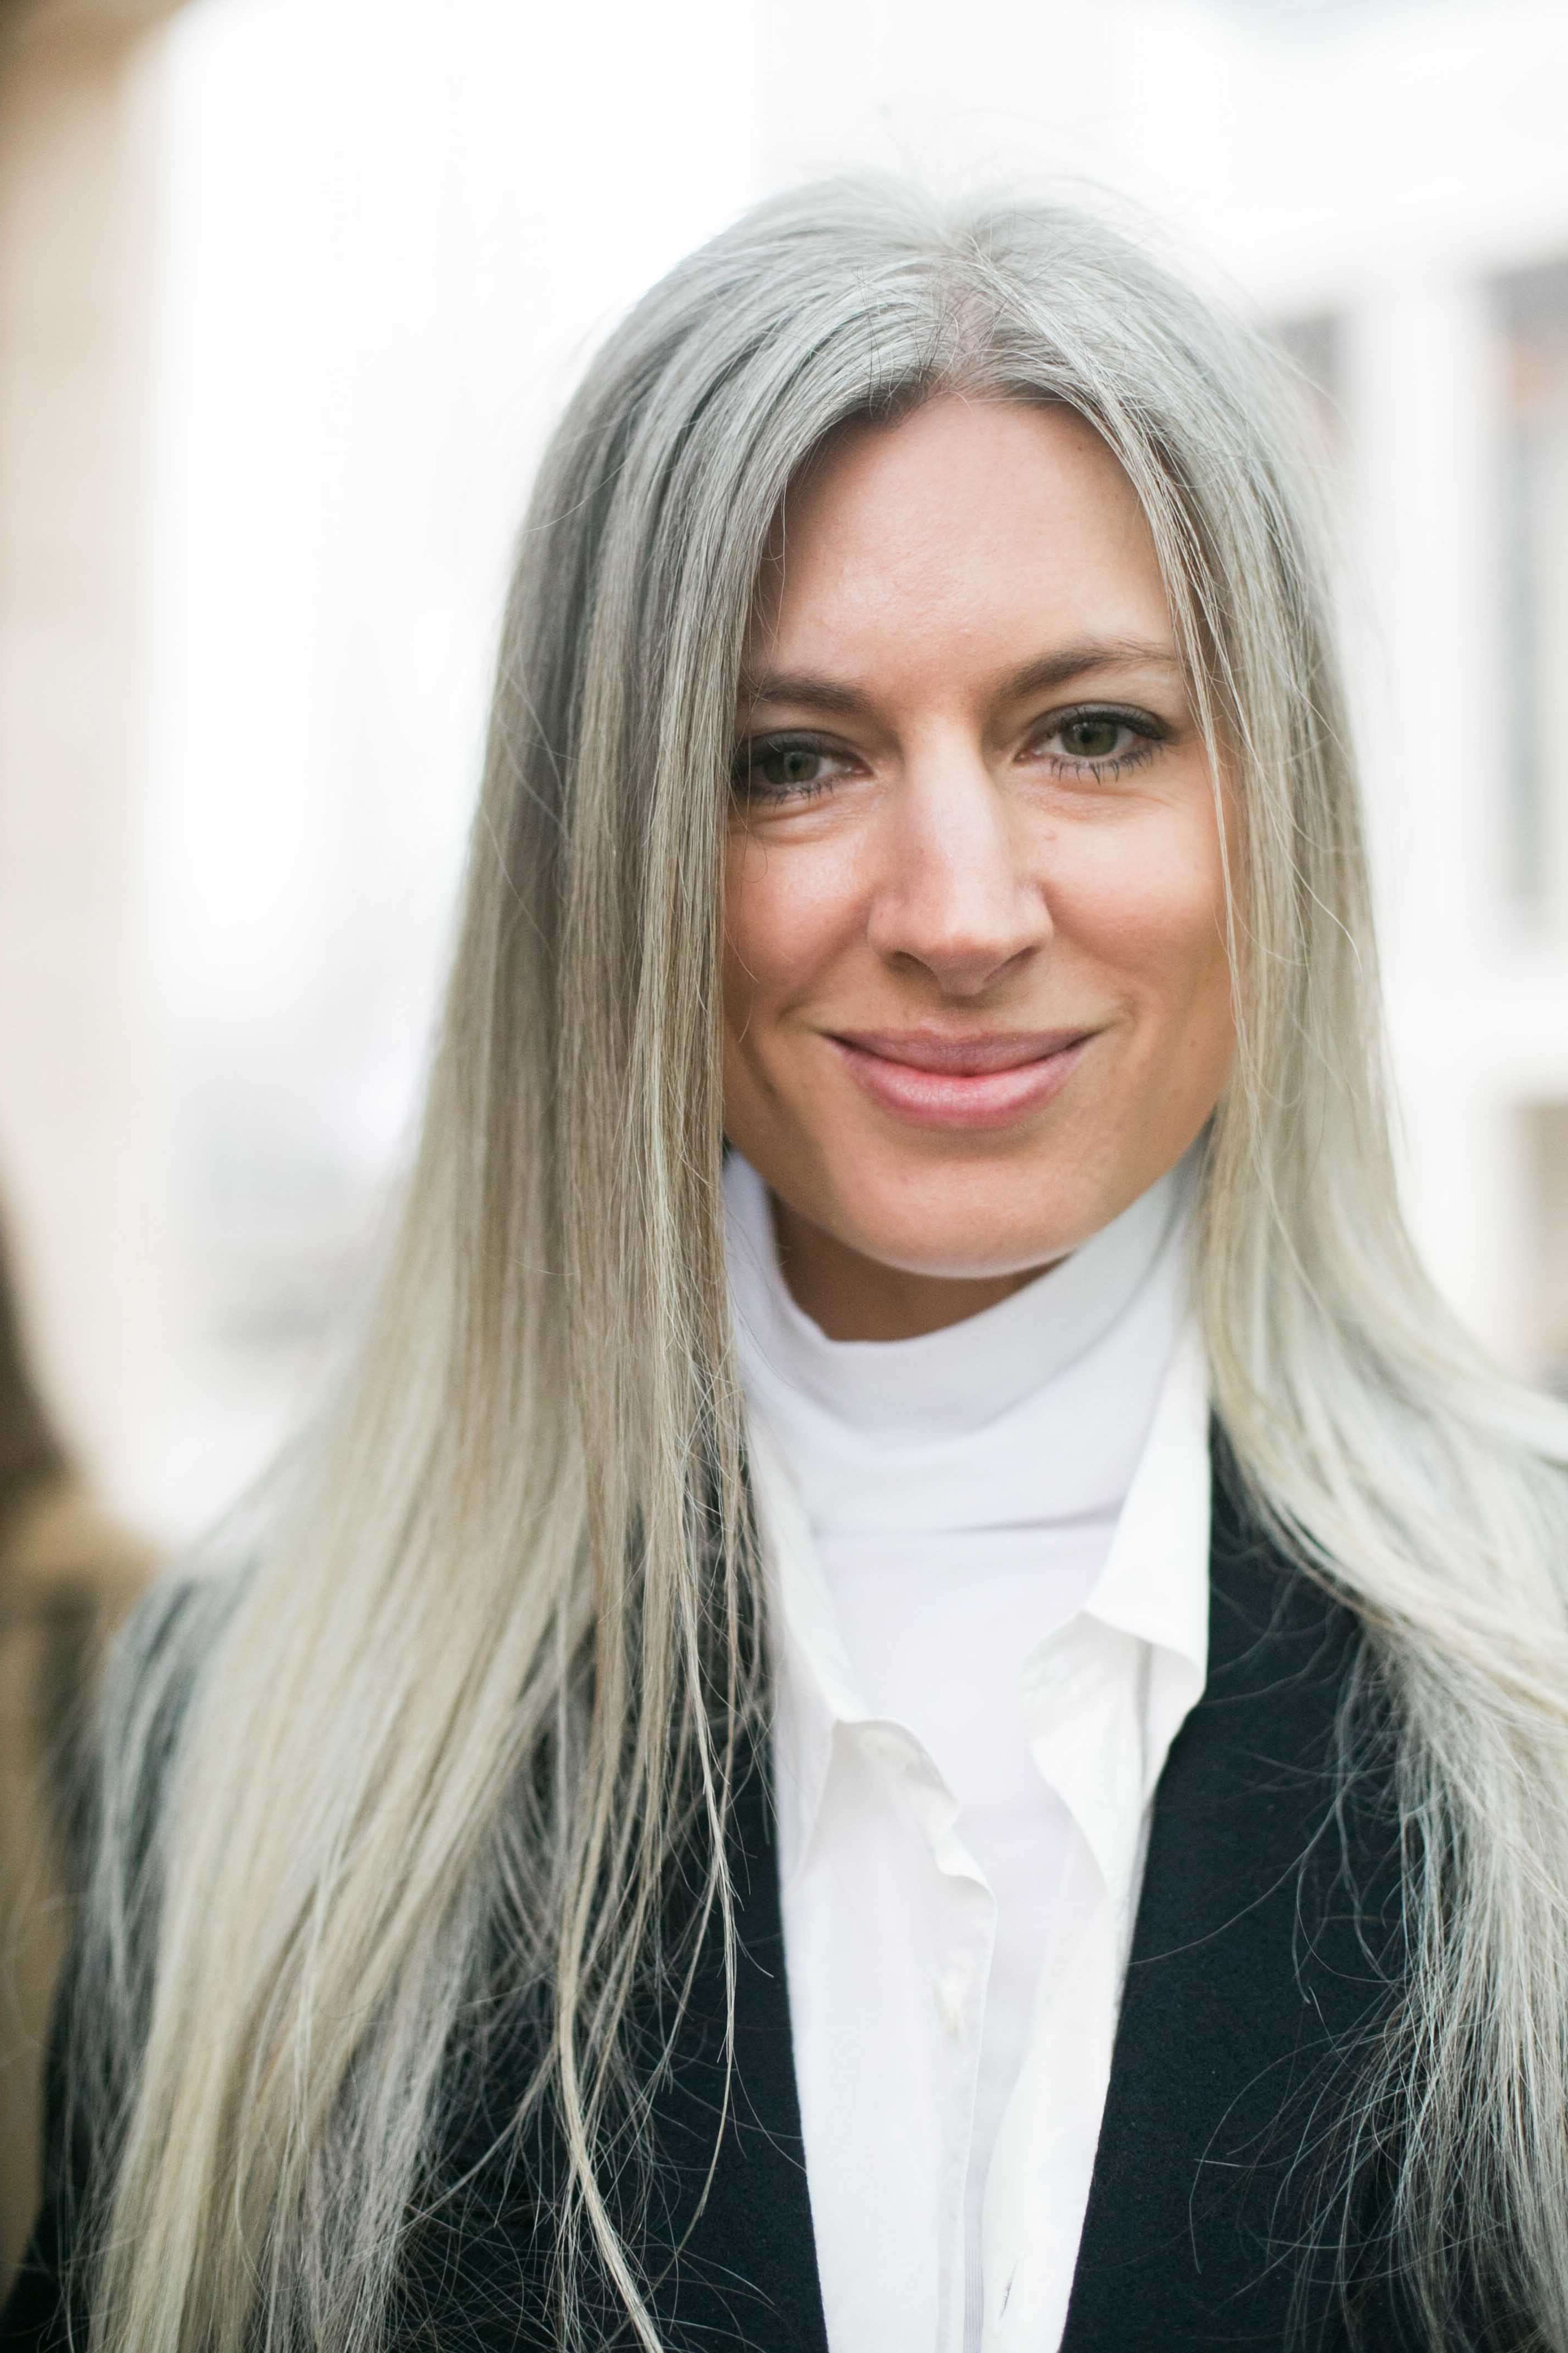 13 Trendy And Sophisticated Hairstyles For Women Over 50 Inside Silver And Sophisticated Hairstyles (View 5 of 20)